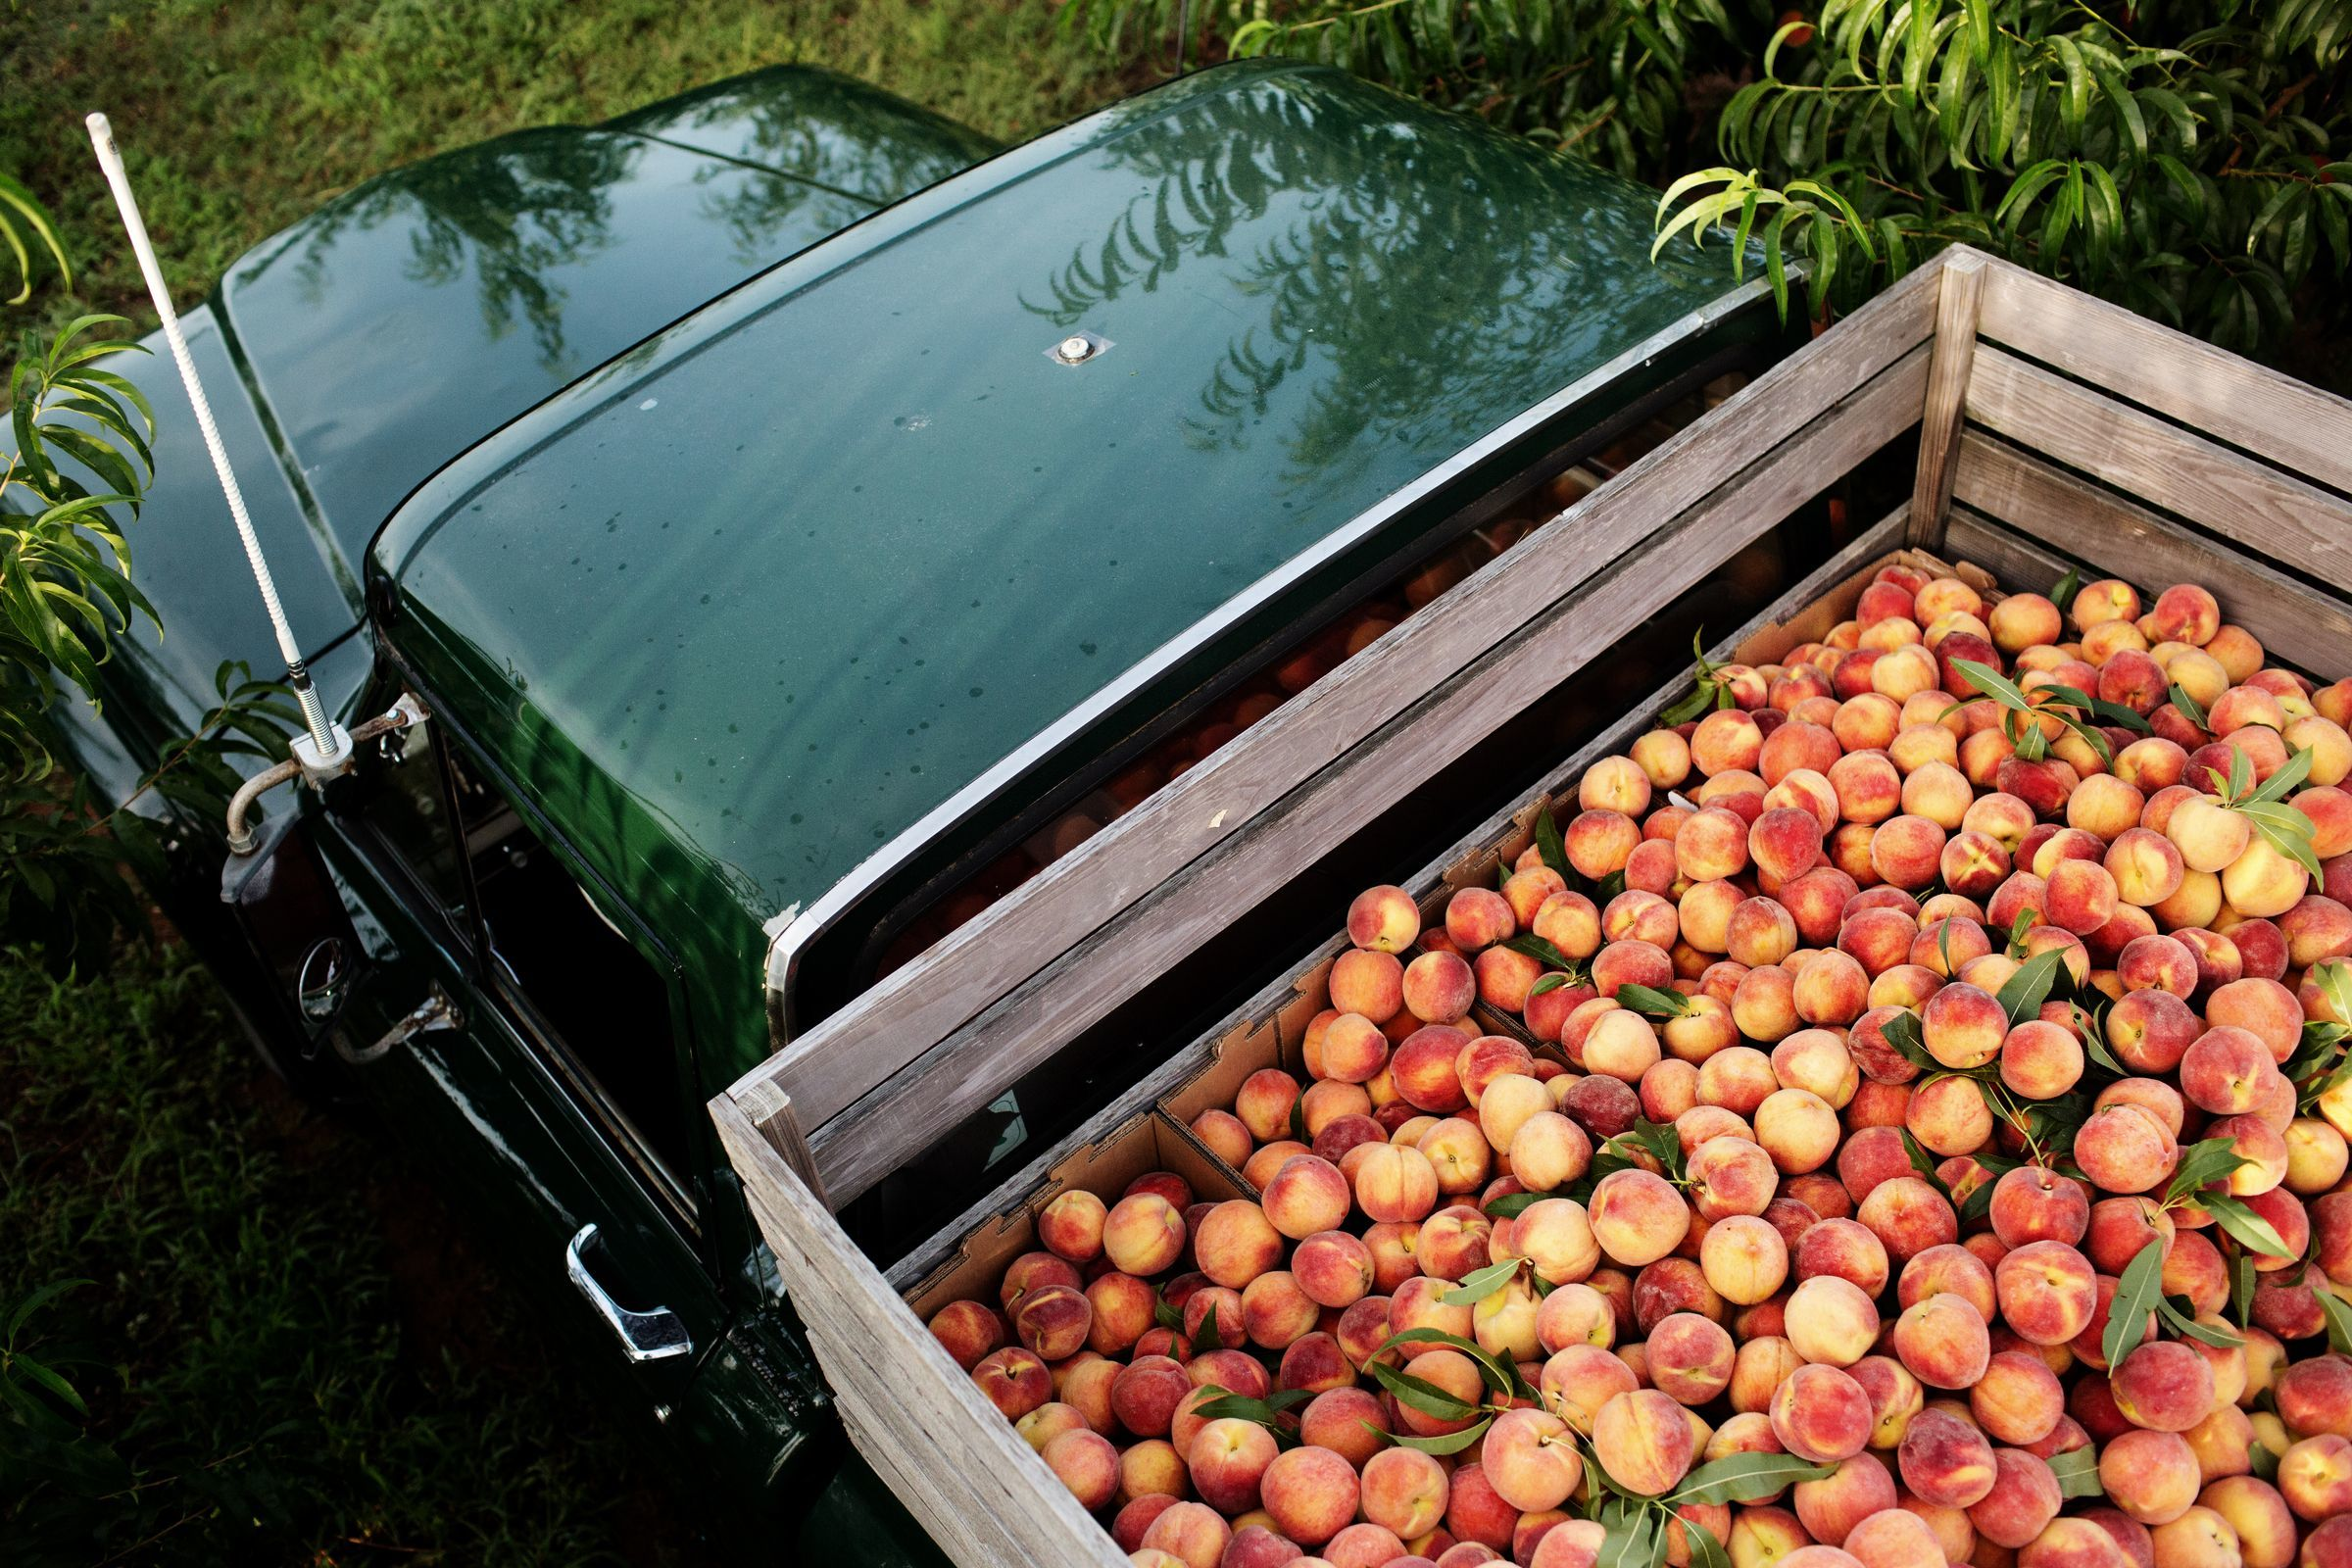 Massively popular peach truck coming back to metro Detroit: Where to find it